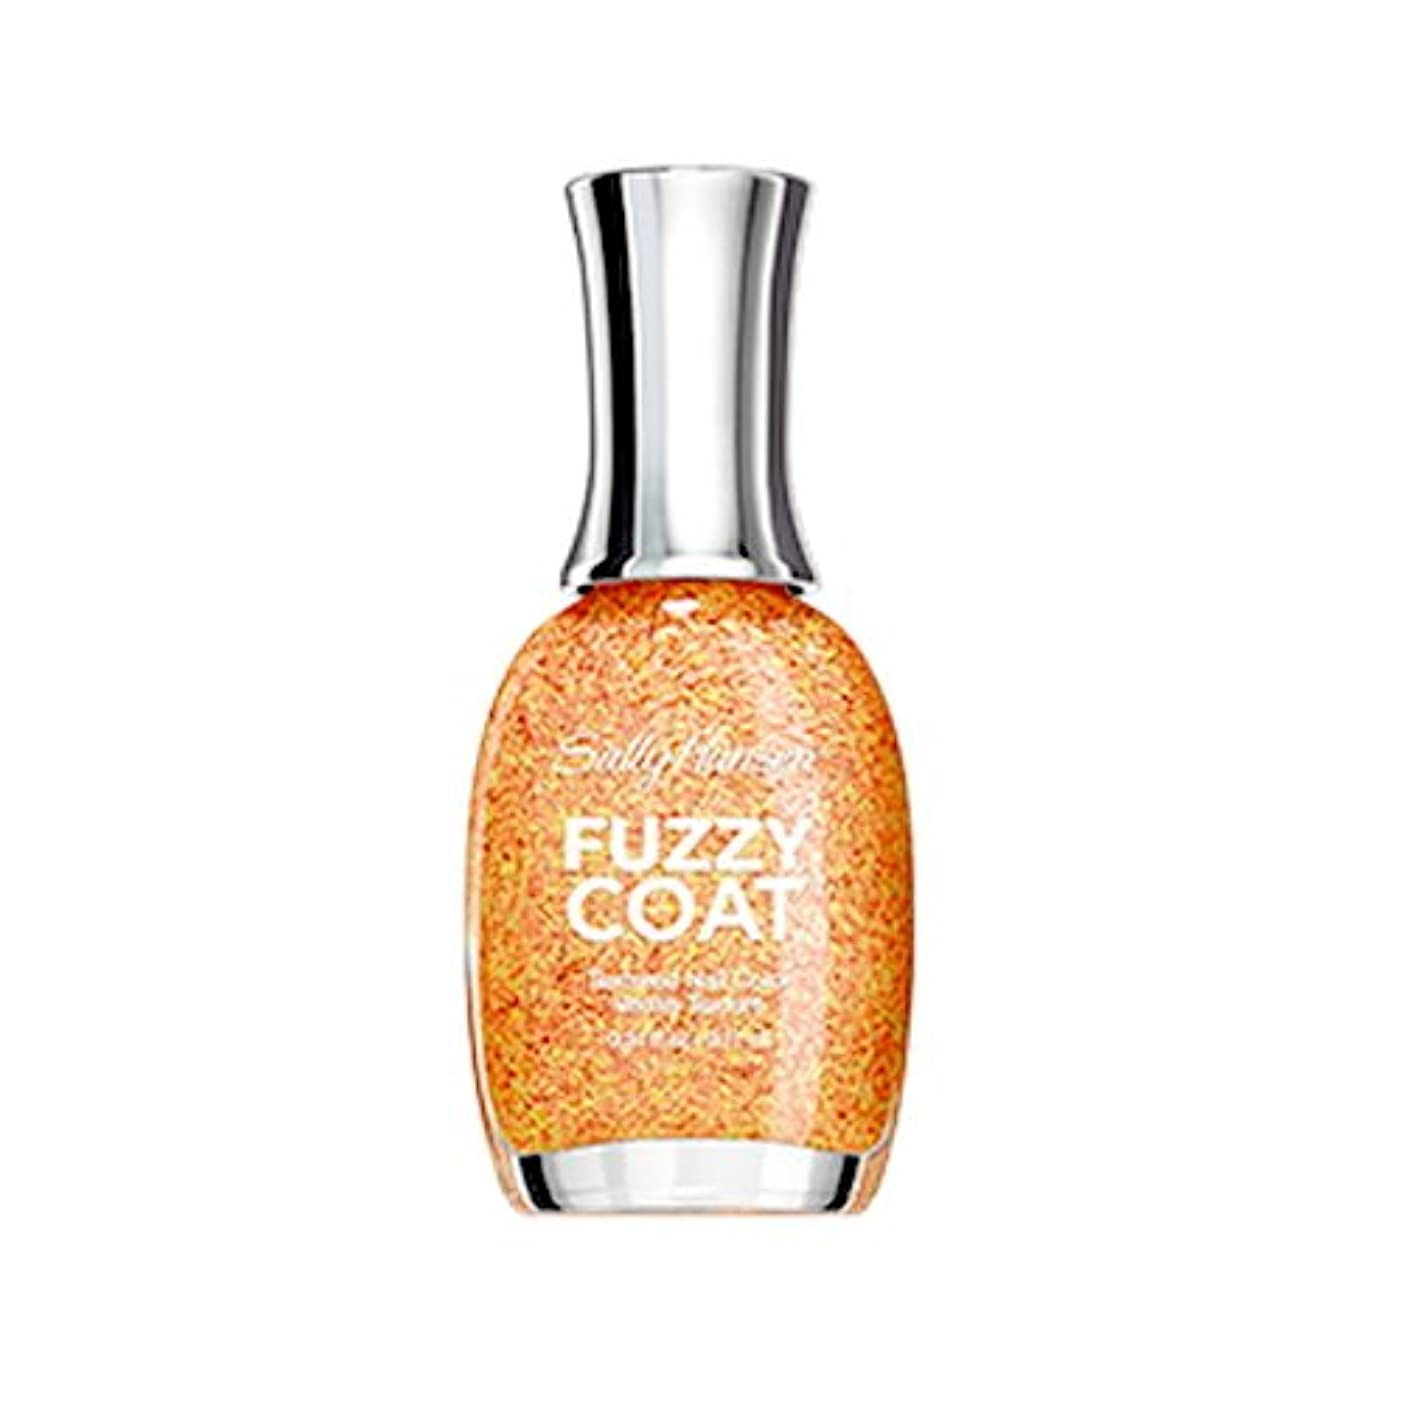 アクティビティ痛みペッカディロ(3 Pack) SALLY HANSEN Fuzzy Coat Special Effect Textured Nail Color - Peach Fuzz (並行輸入品)